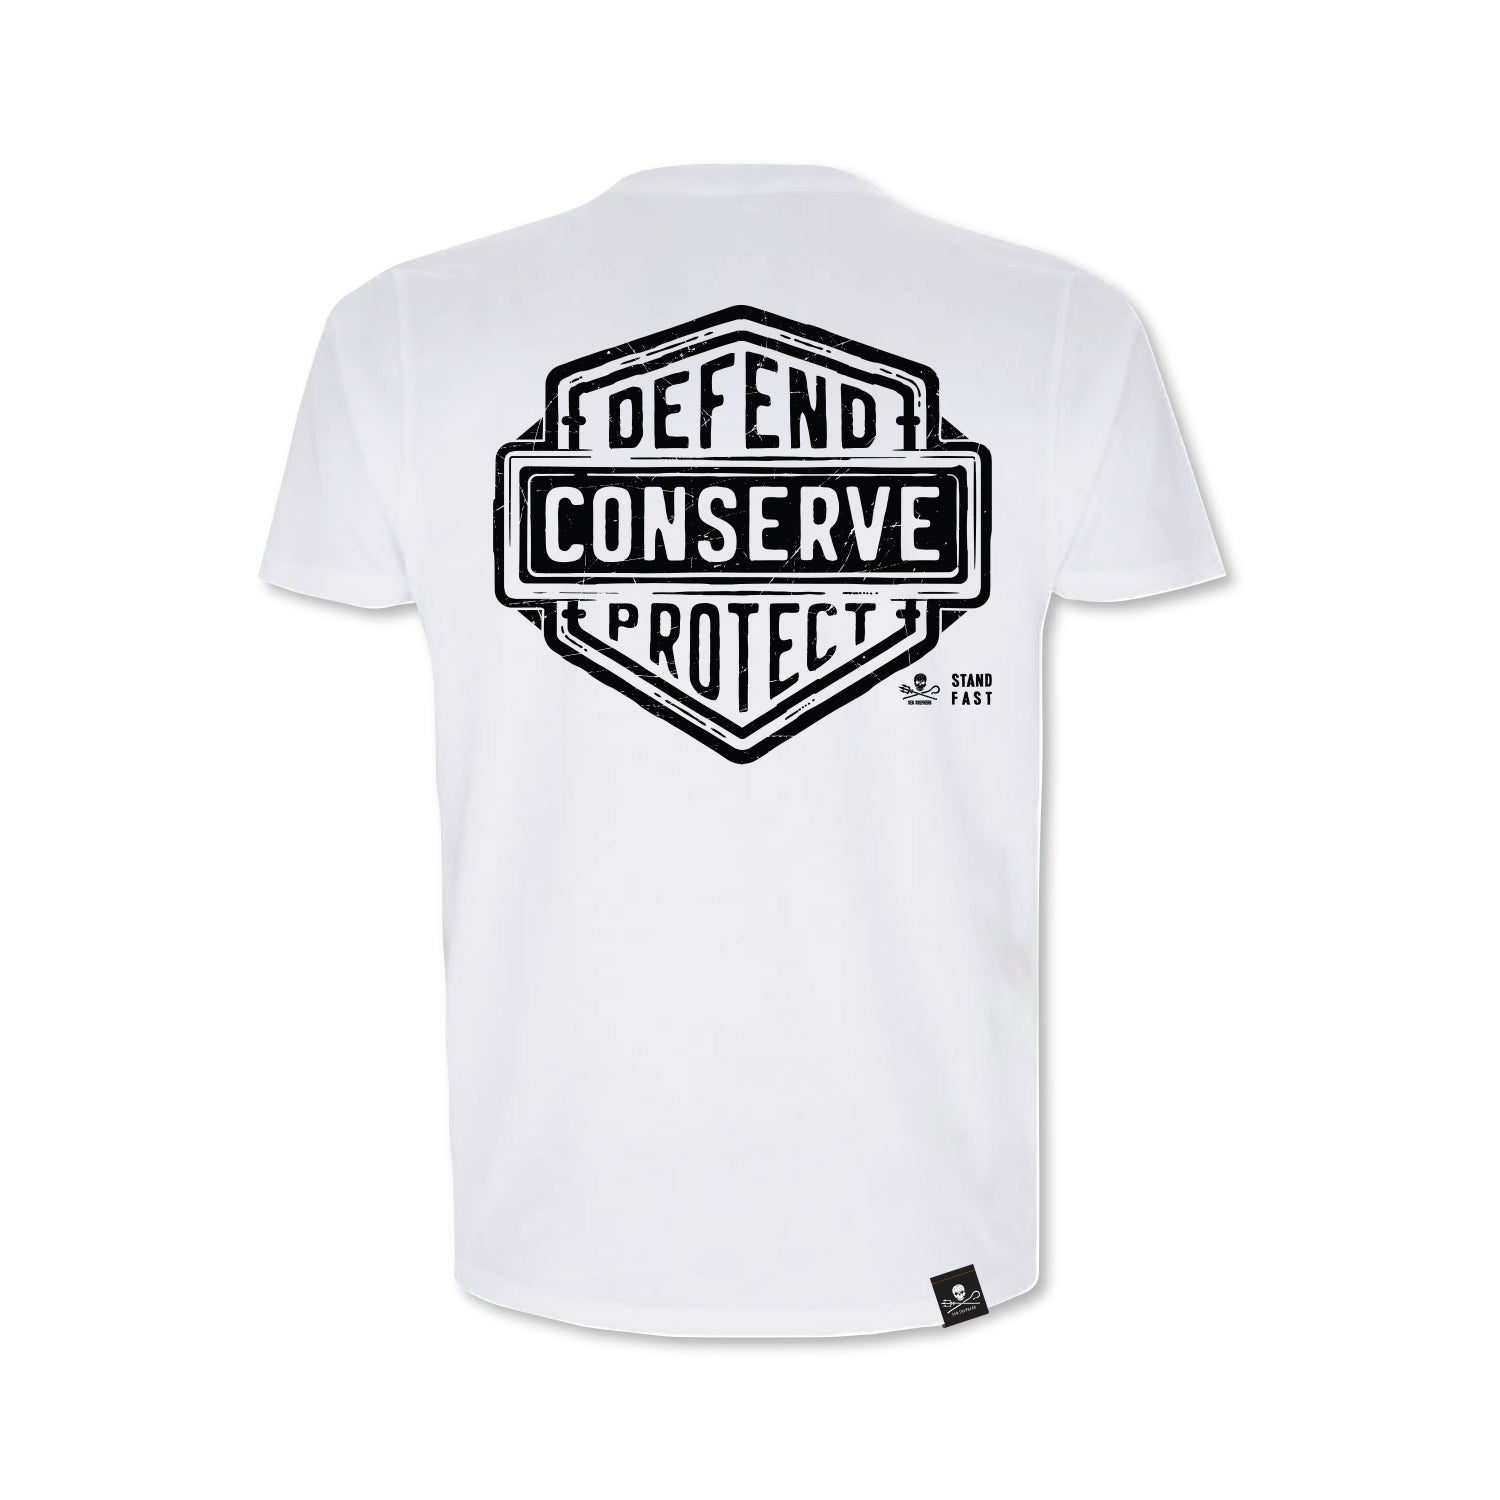 Sea Shepherd Stand Fast - Defend Conserve Protect Forever 100% Organic Cotton Jersey - White Tee